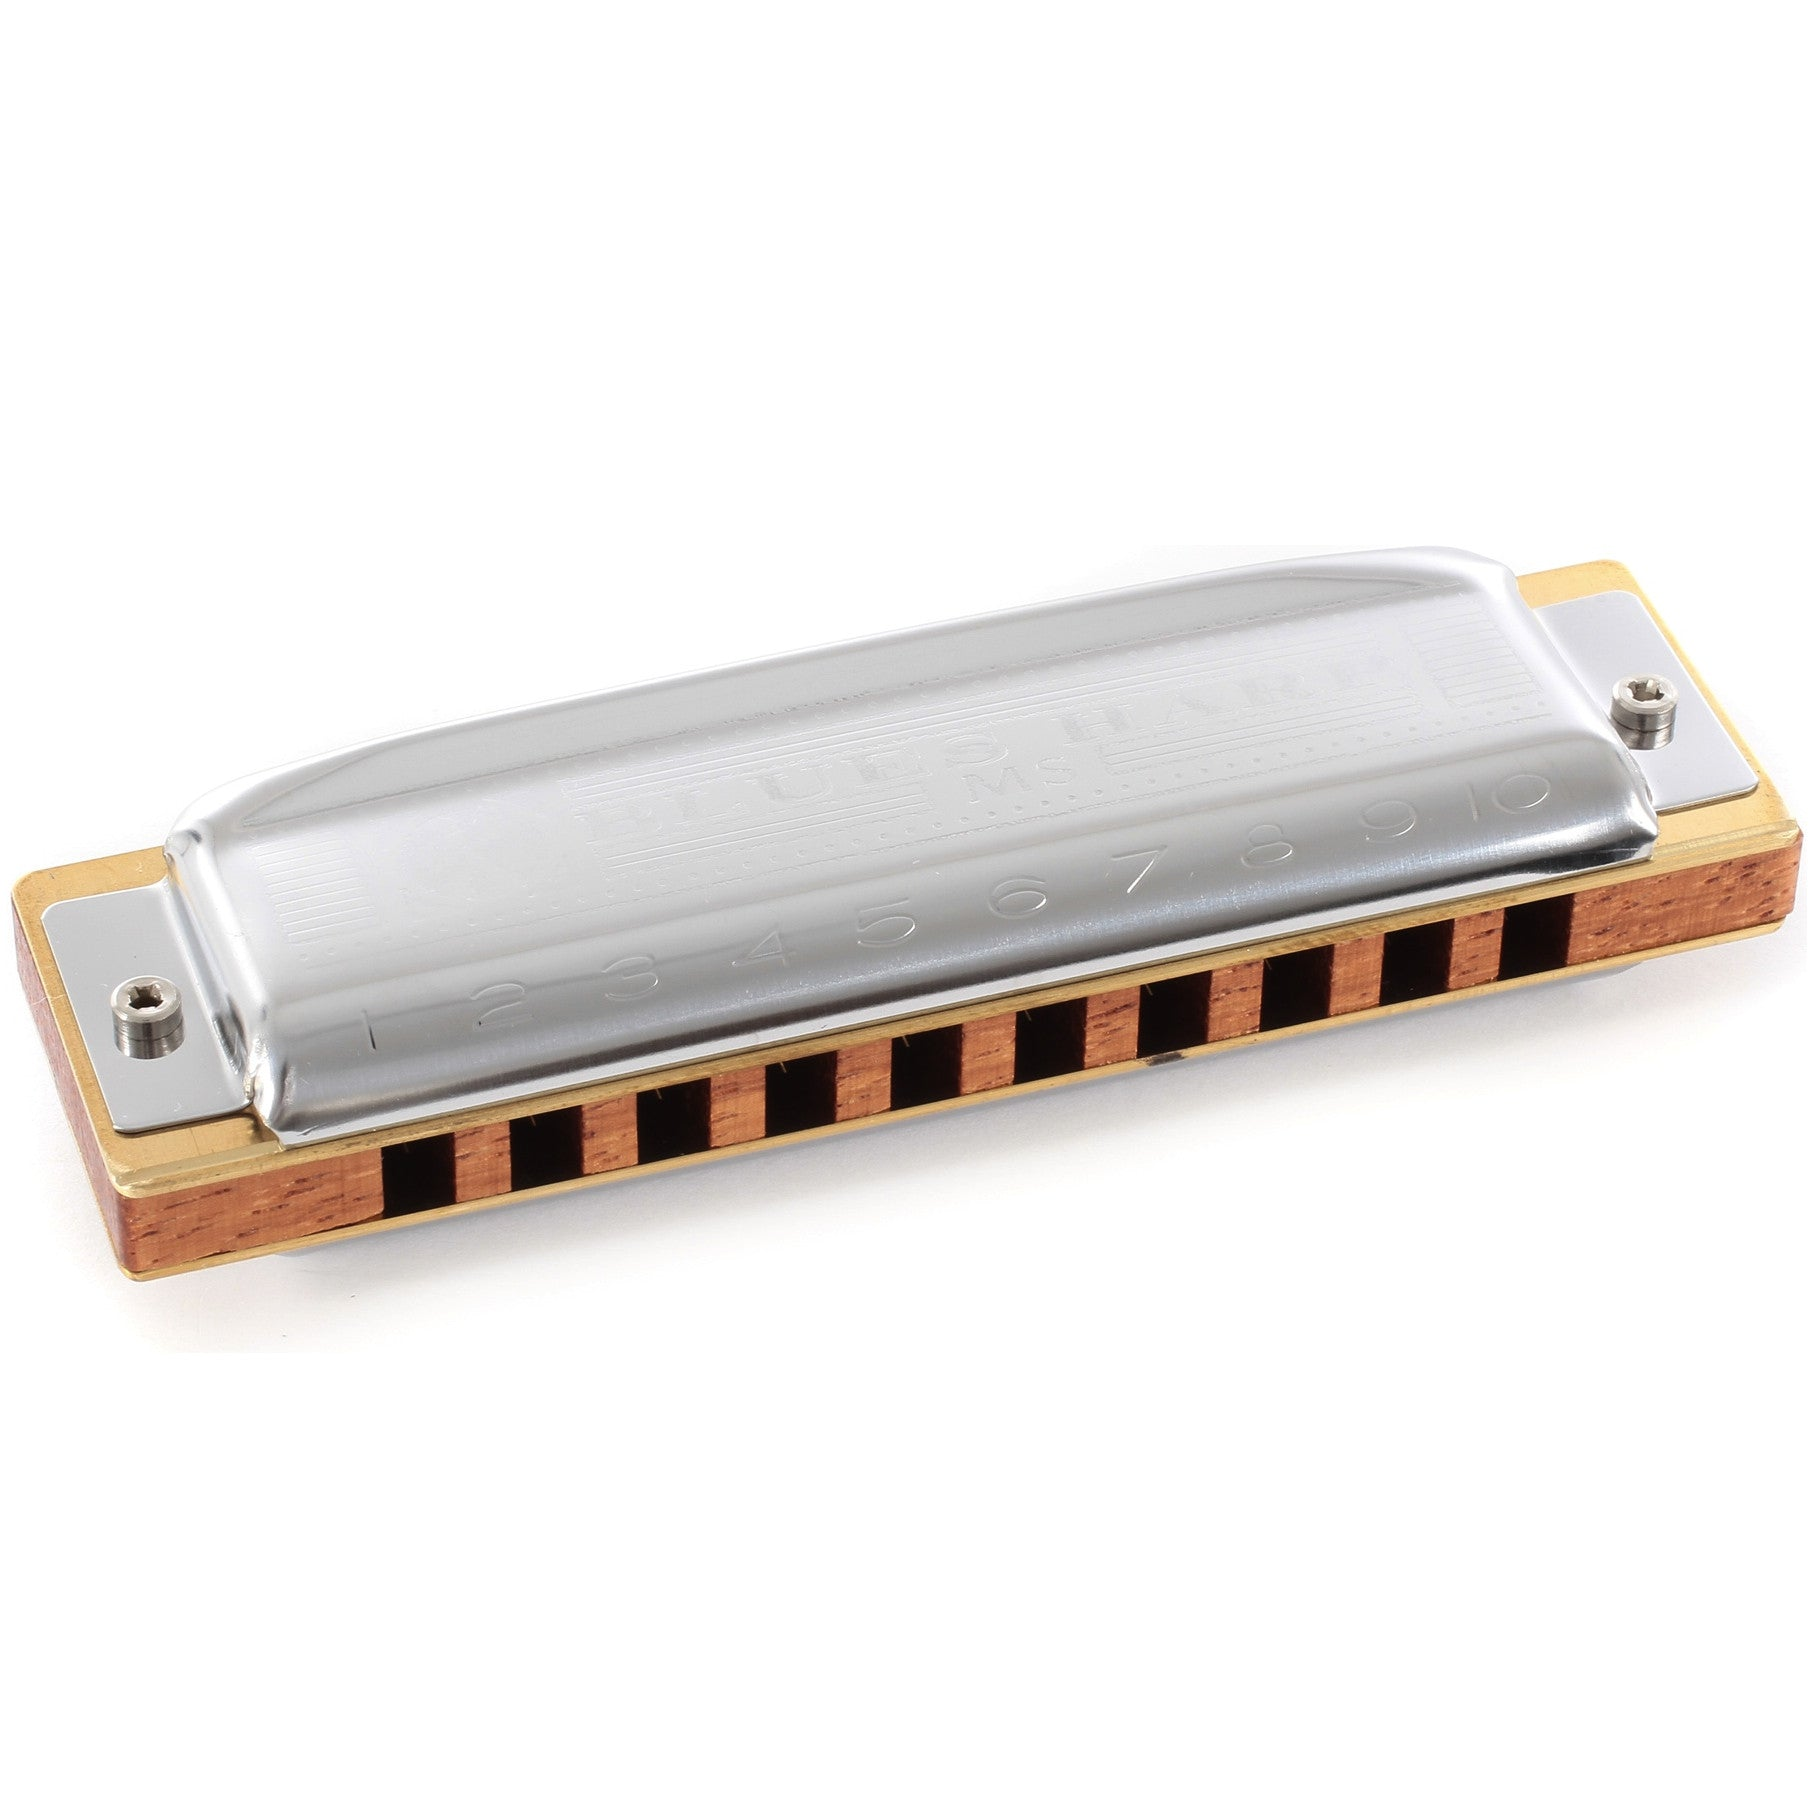 Hohner 532 Blues Harp MS-Series Harmonica in Key of A